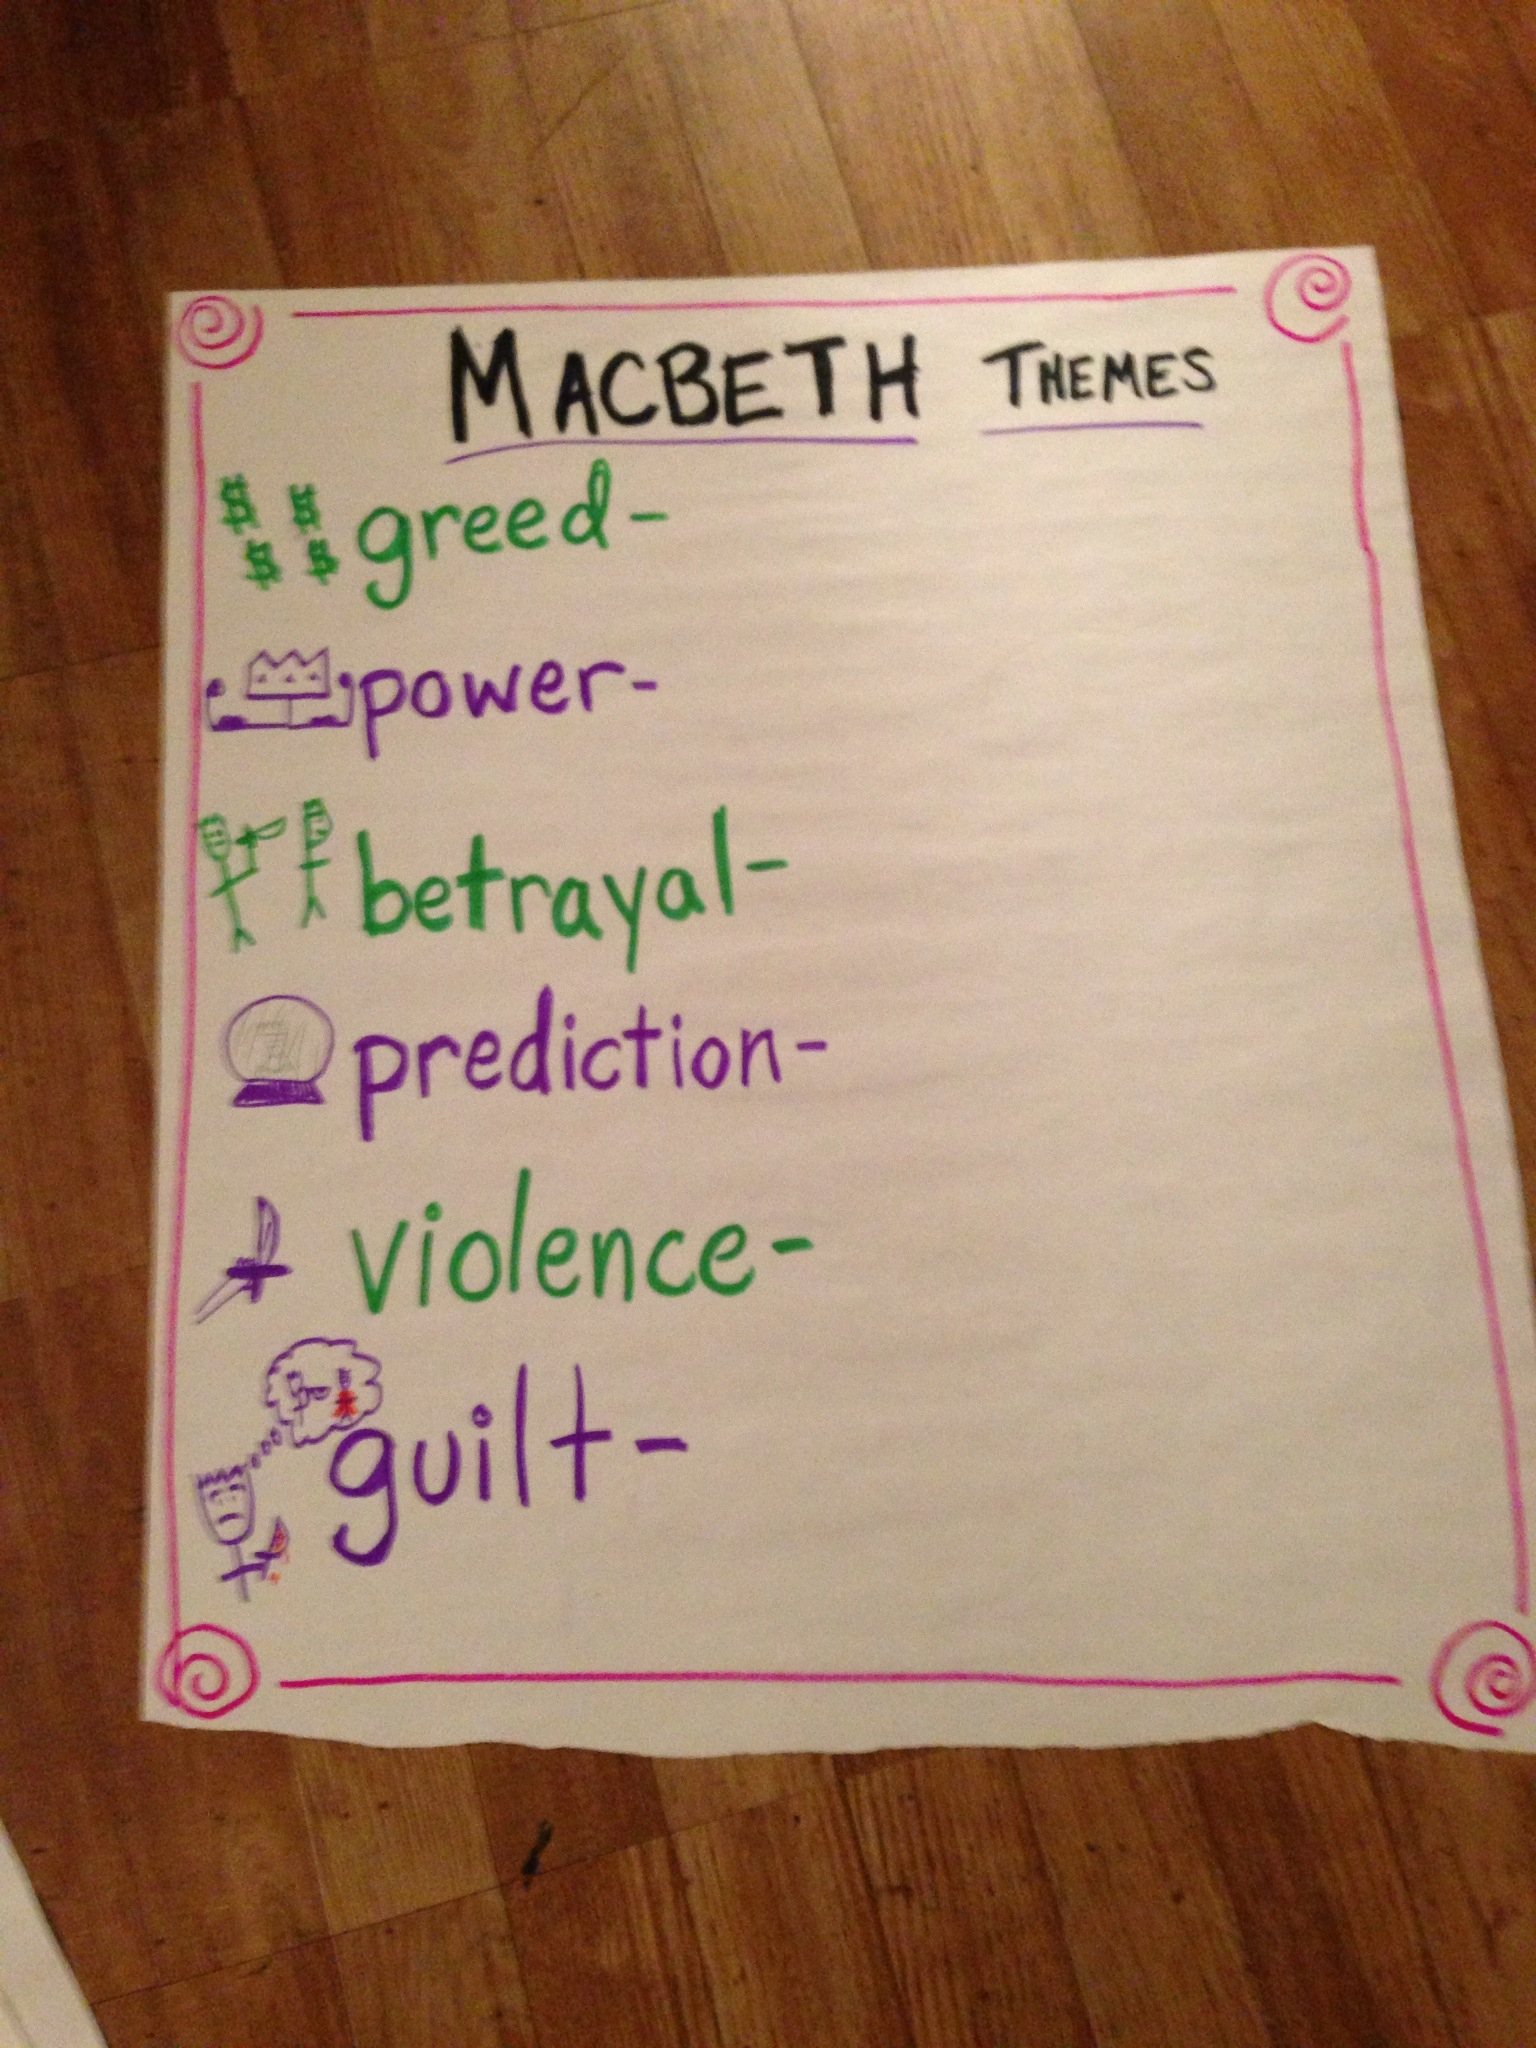 write an essay comparing and contrasting macbeth and banquo in this act